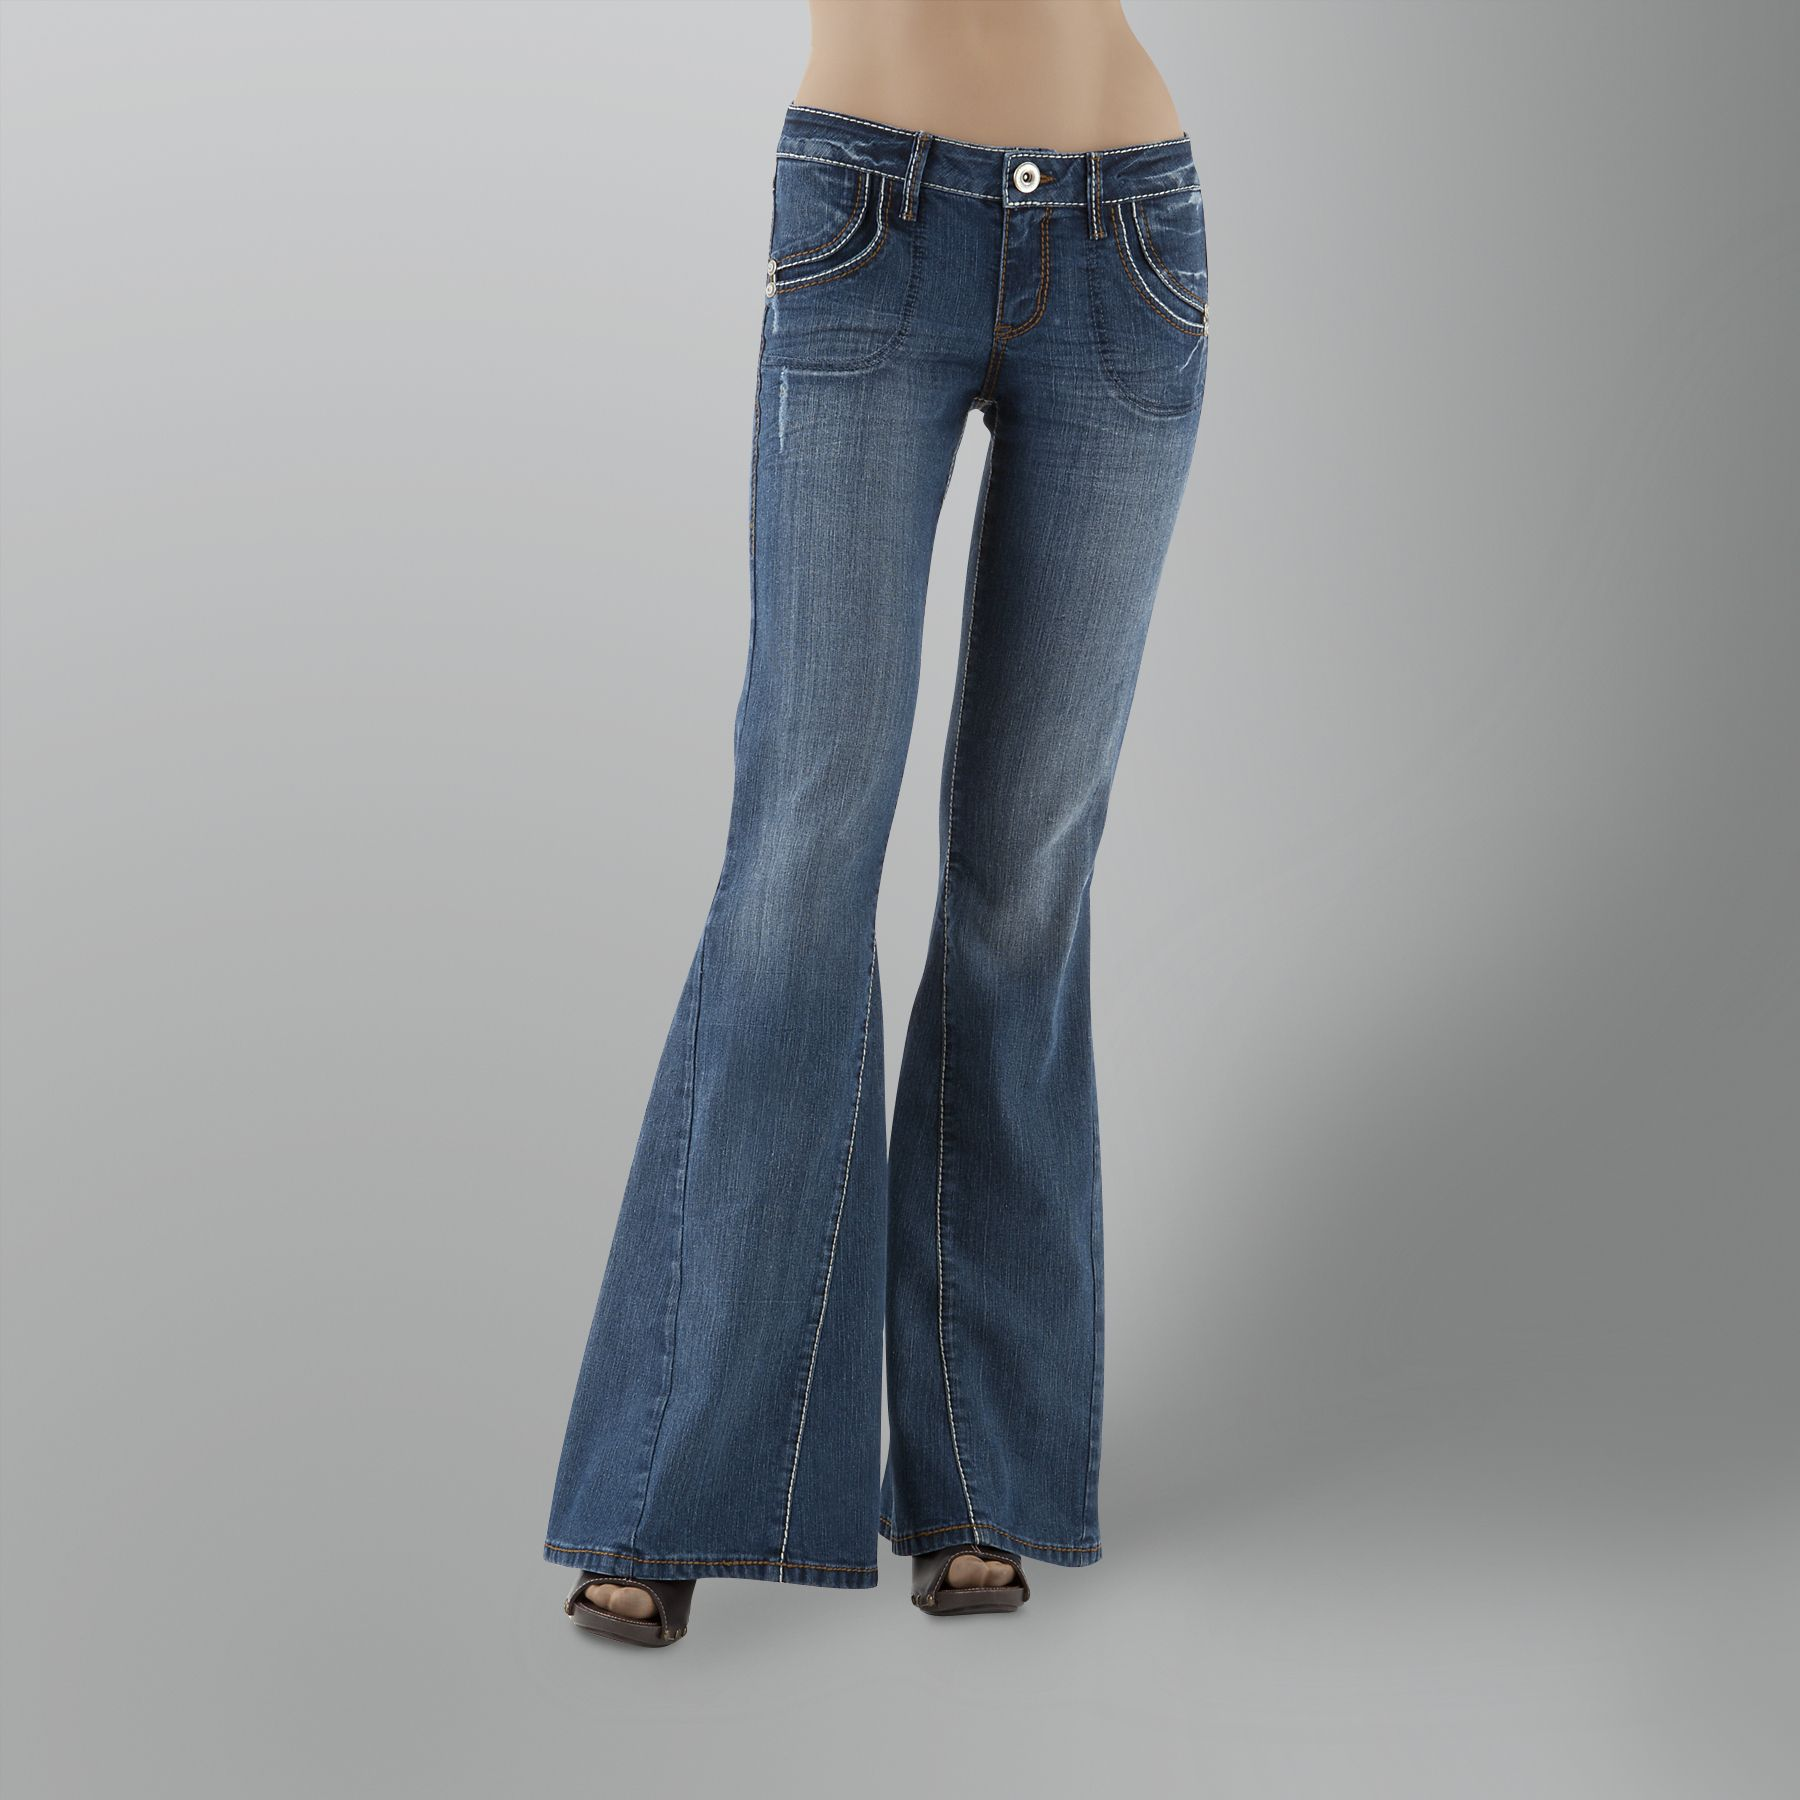 Fragile Junior's Thick-Stitched Bell Bottom Jean at Sears.com